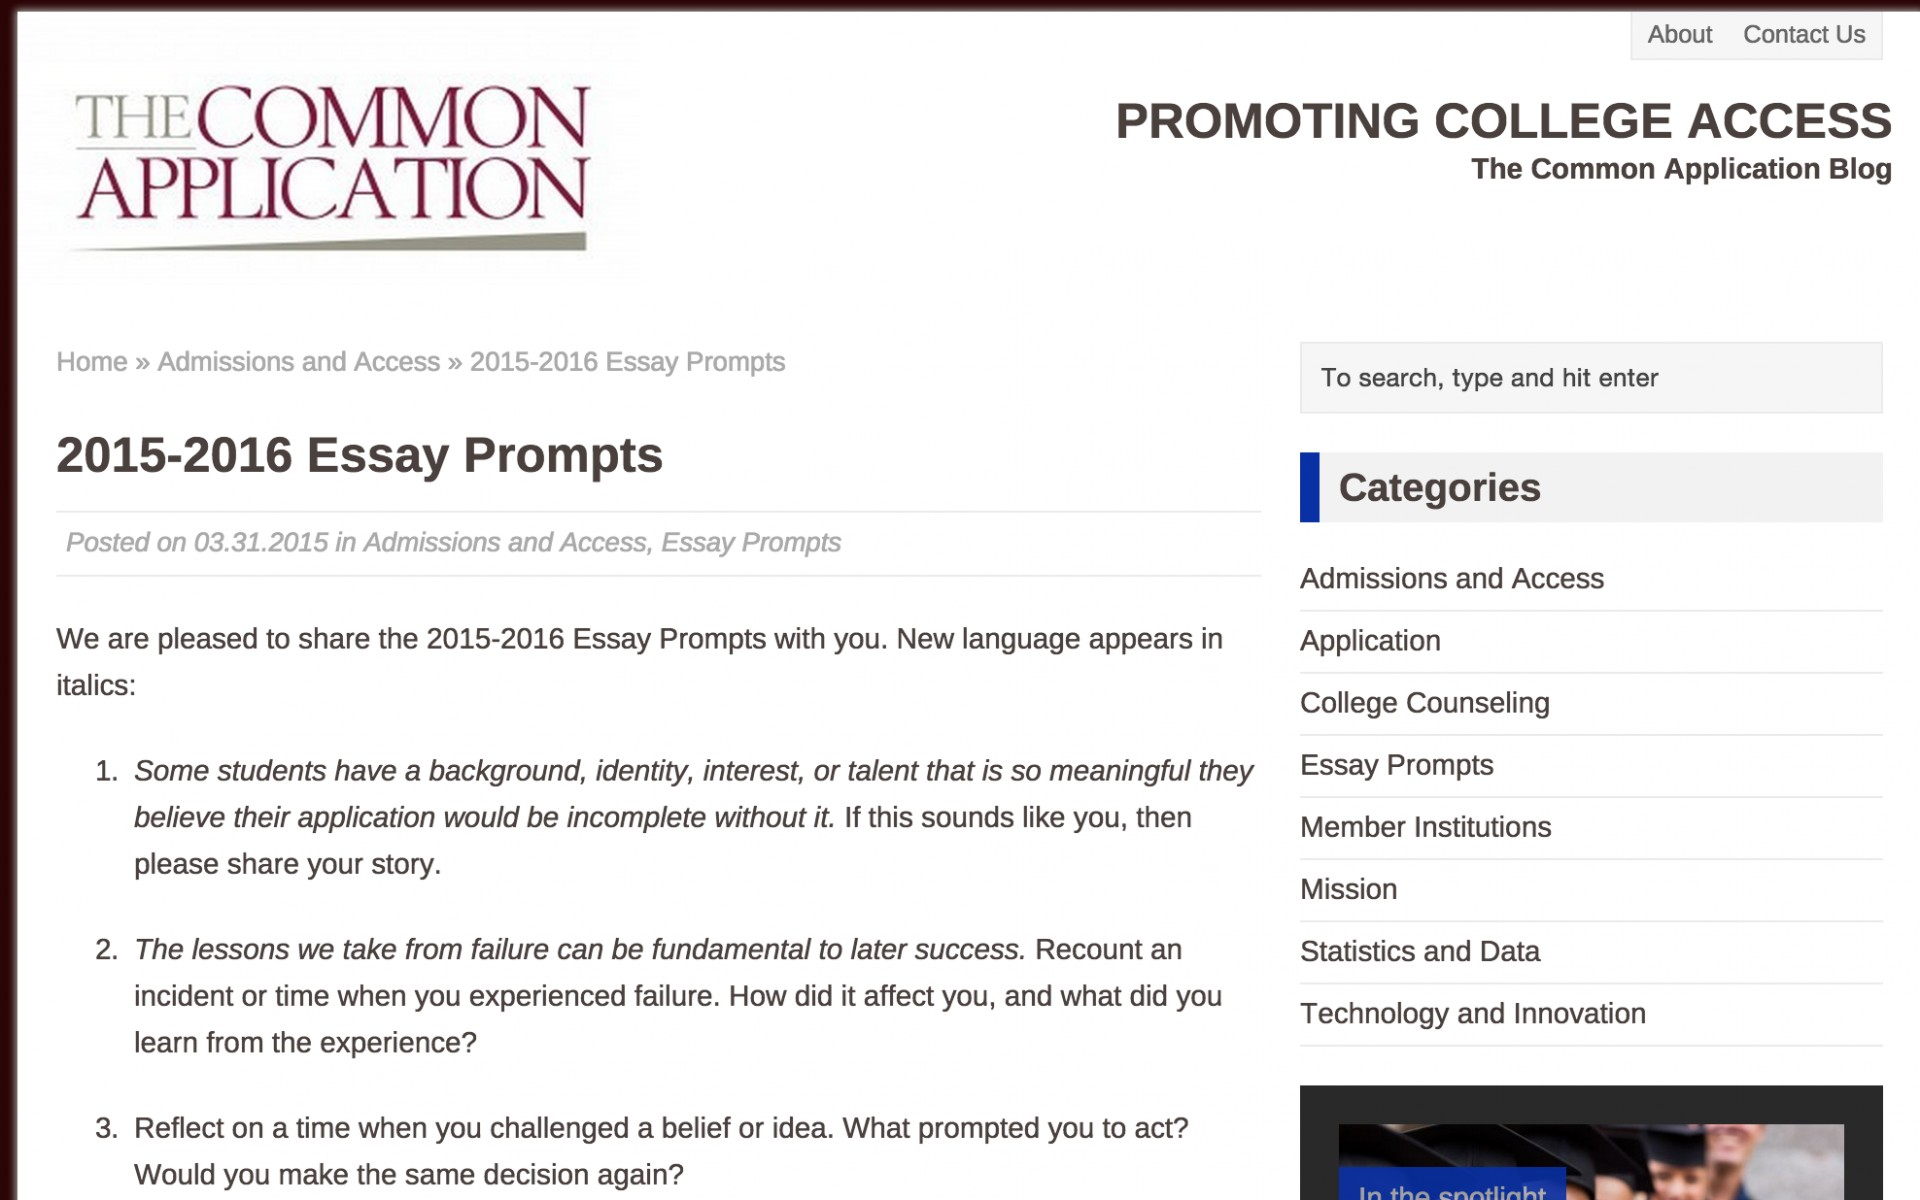 007 Length Of College Essay Common App Screen Shot At Pm Excellent 1920